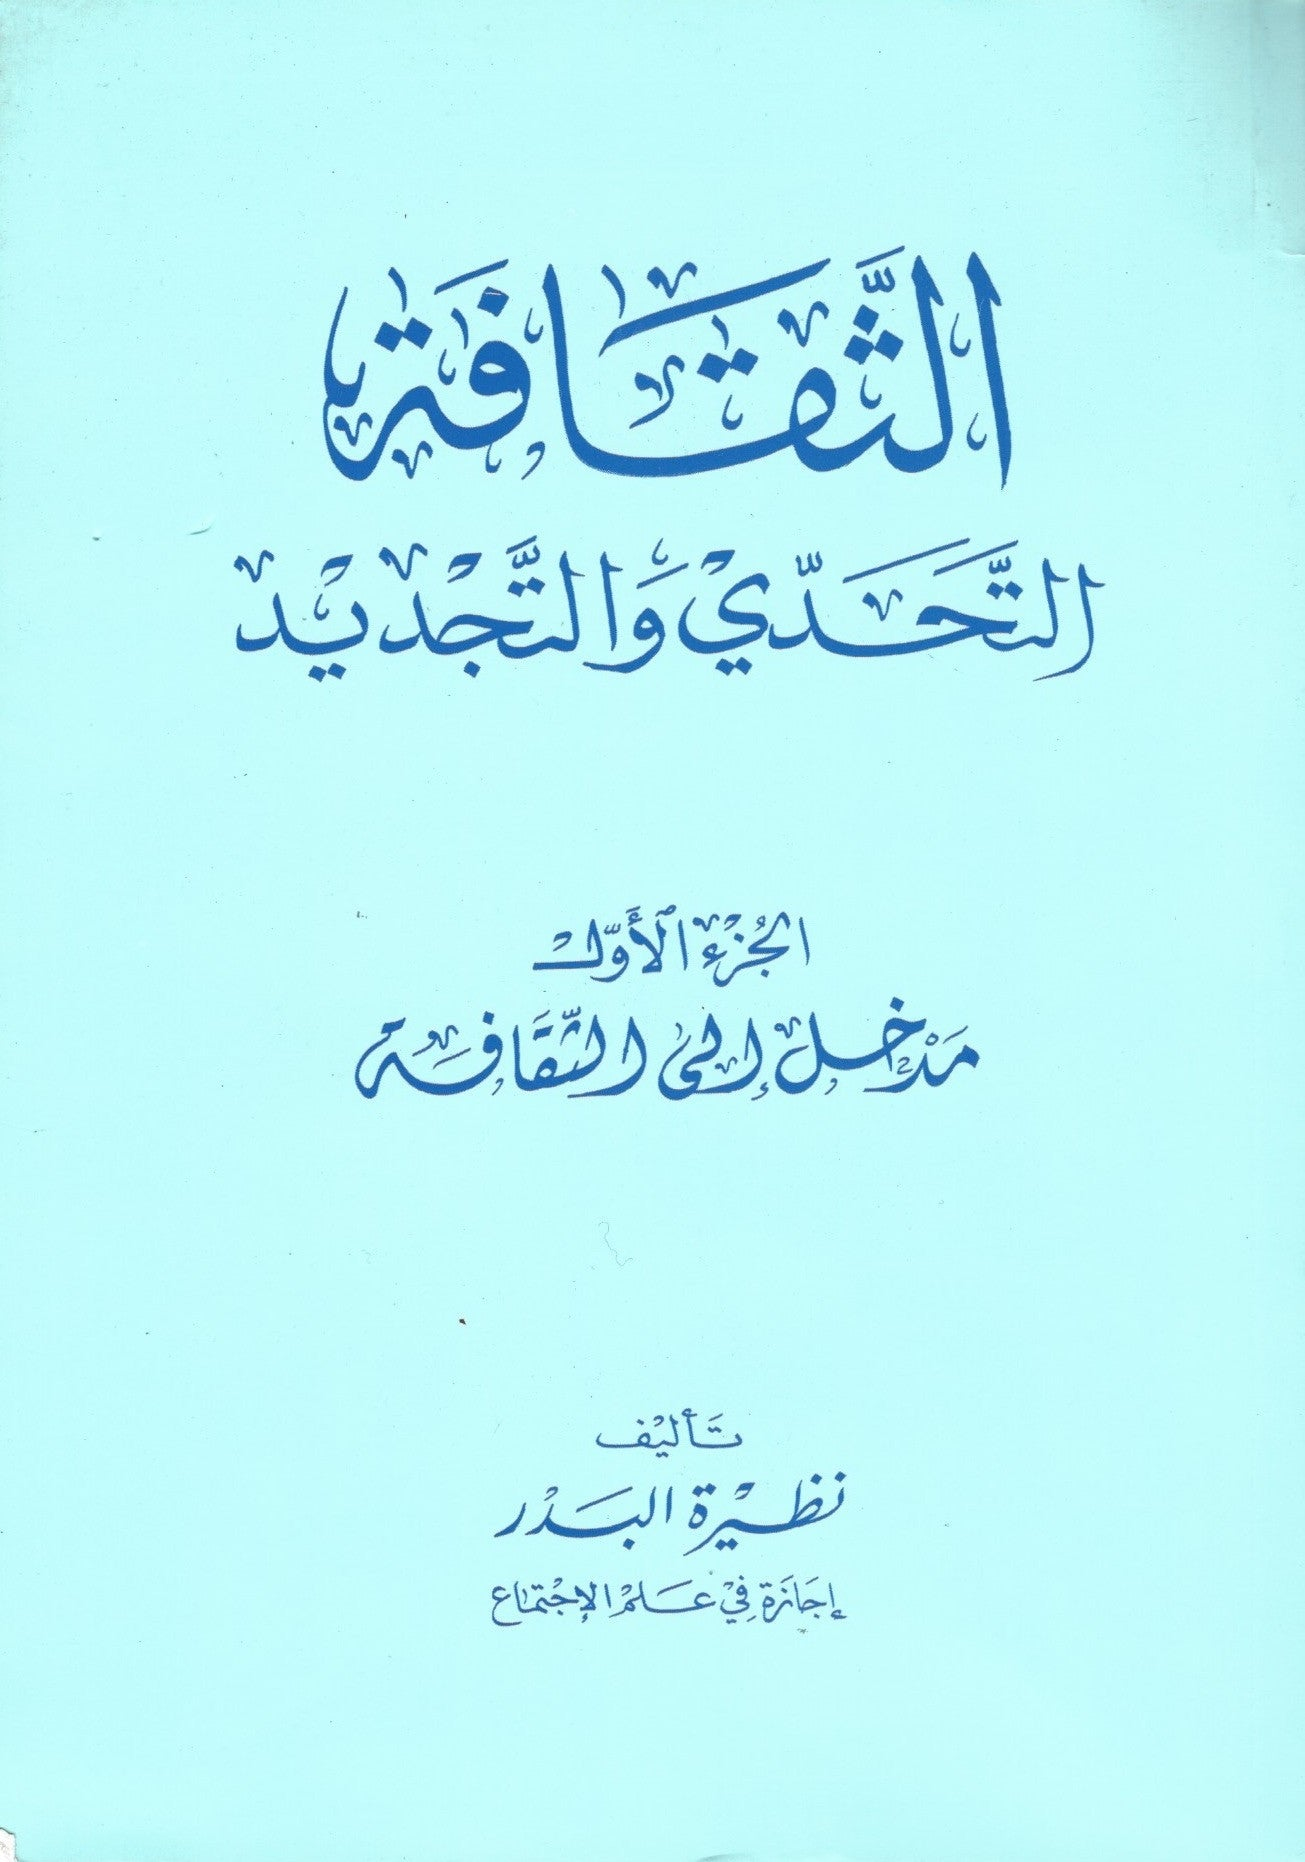 الثقافة: التحدّي والتجديد (Al Thaqafi - 4 volumes) , Shaam - Daybreak Press Global Bookshop, Daybreak Press Global Bookshop  - 1